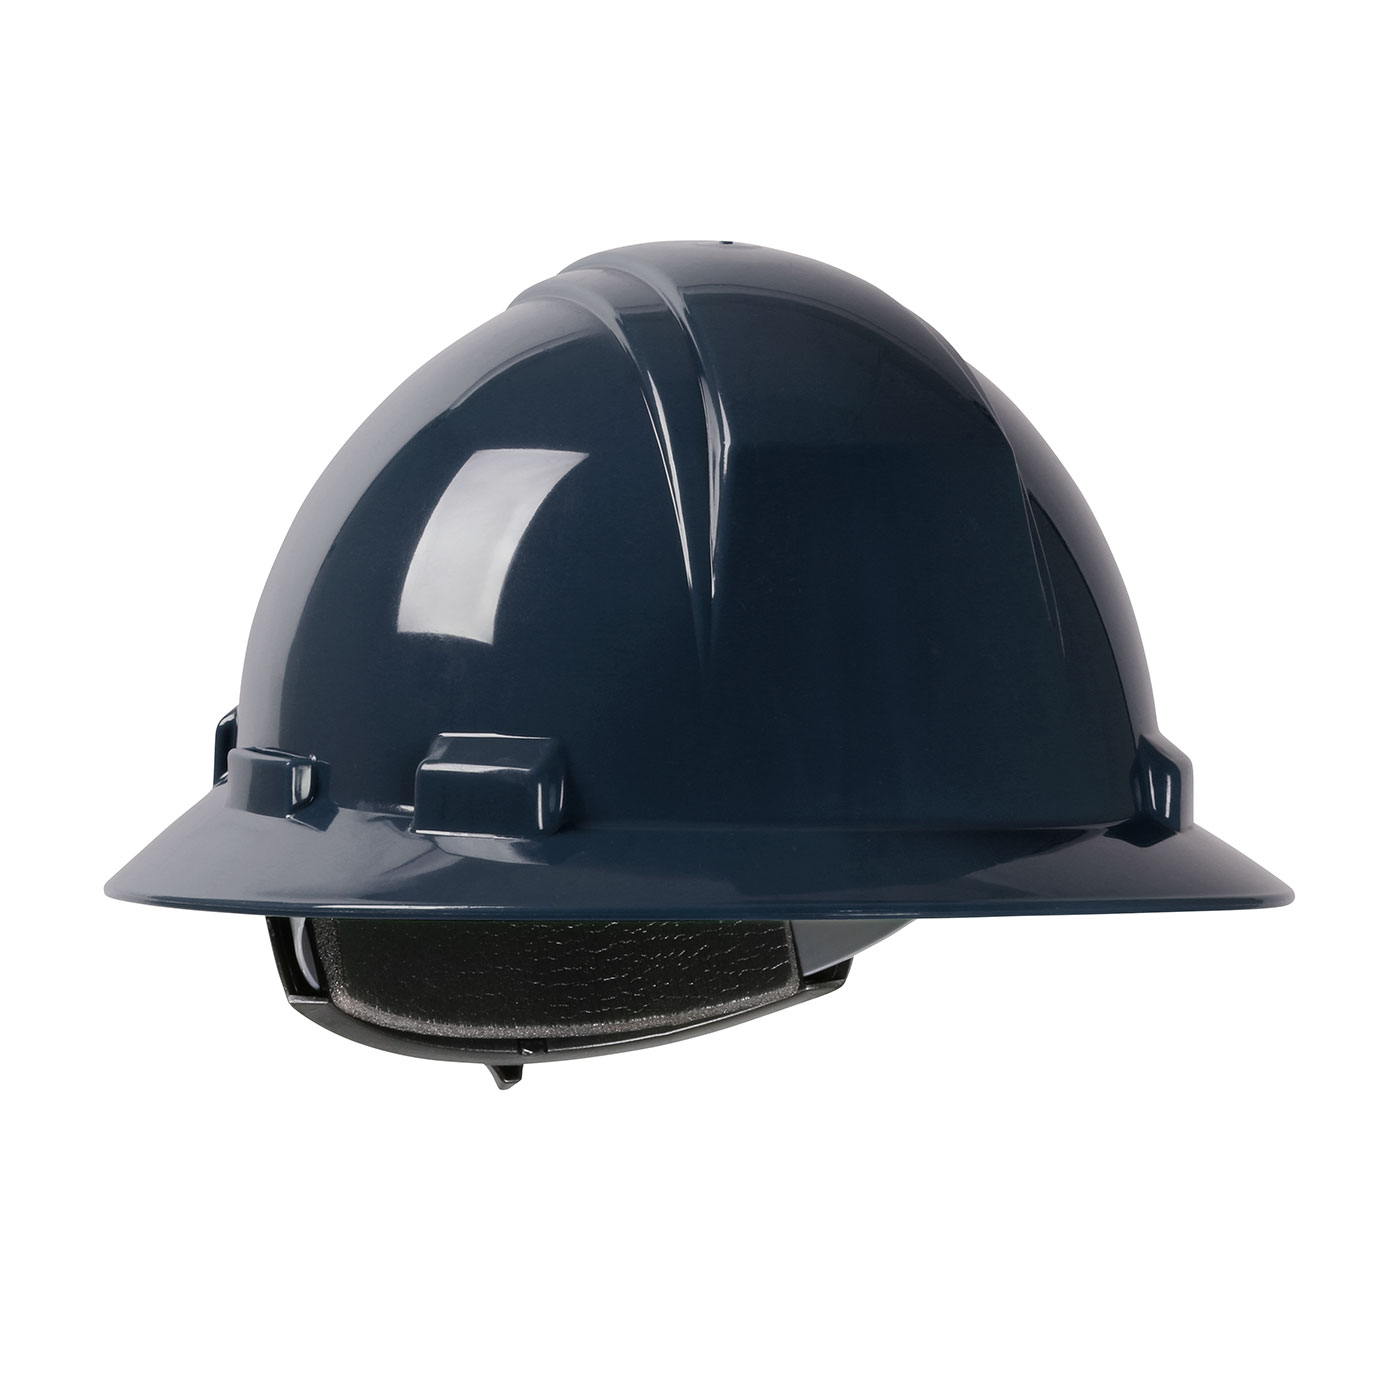 280-HP261R PIP® Dynamic Kilimanjaro™ Full Brim Hard Hat with HDPE Shell, 4-Point Textile Suspension and Wheel Ratchet Adjustment - Blue